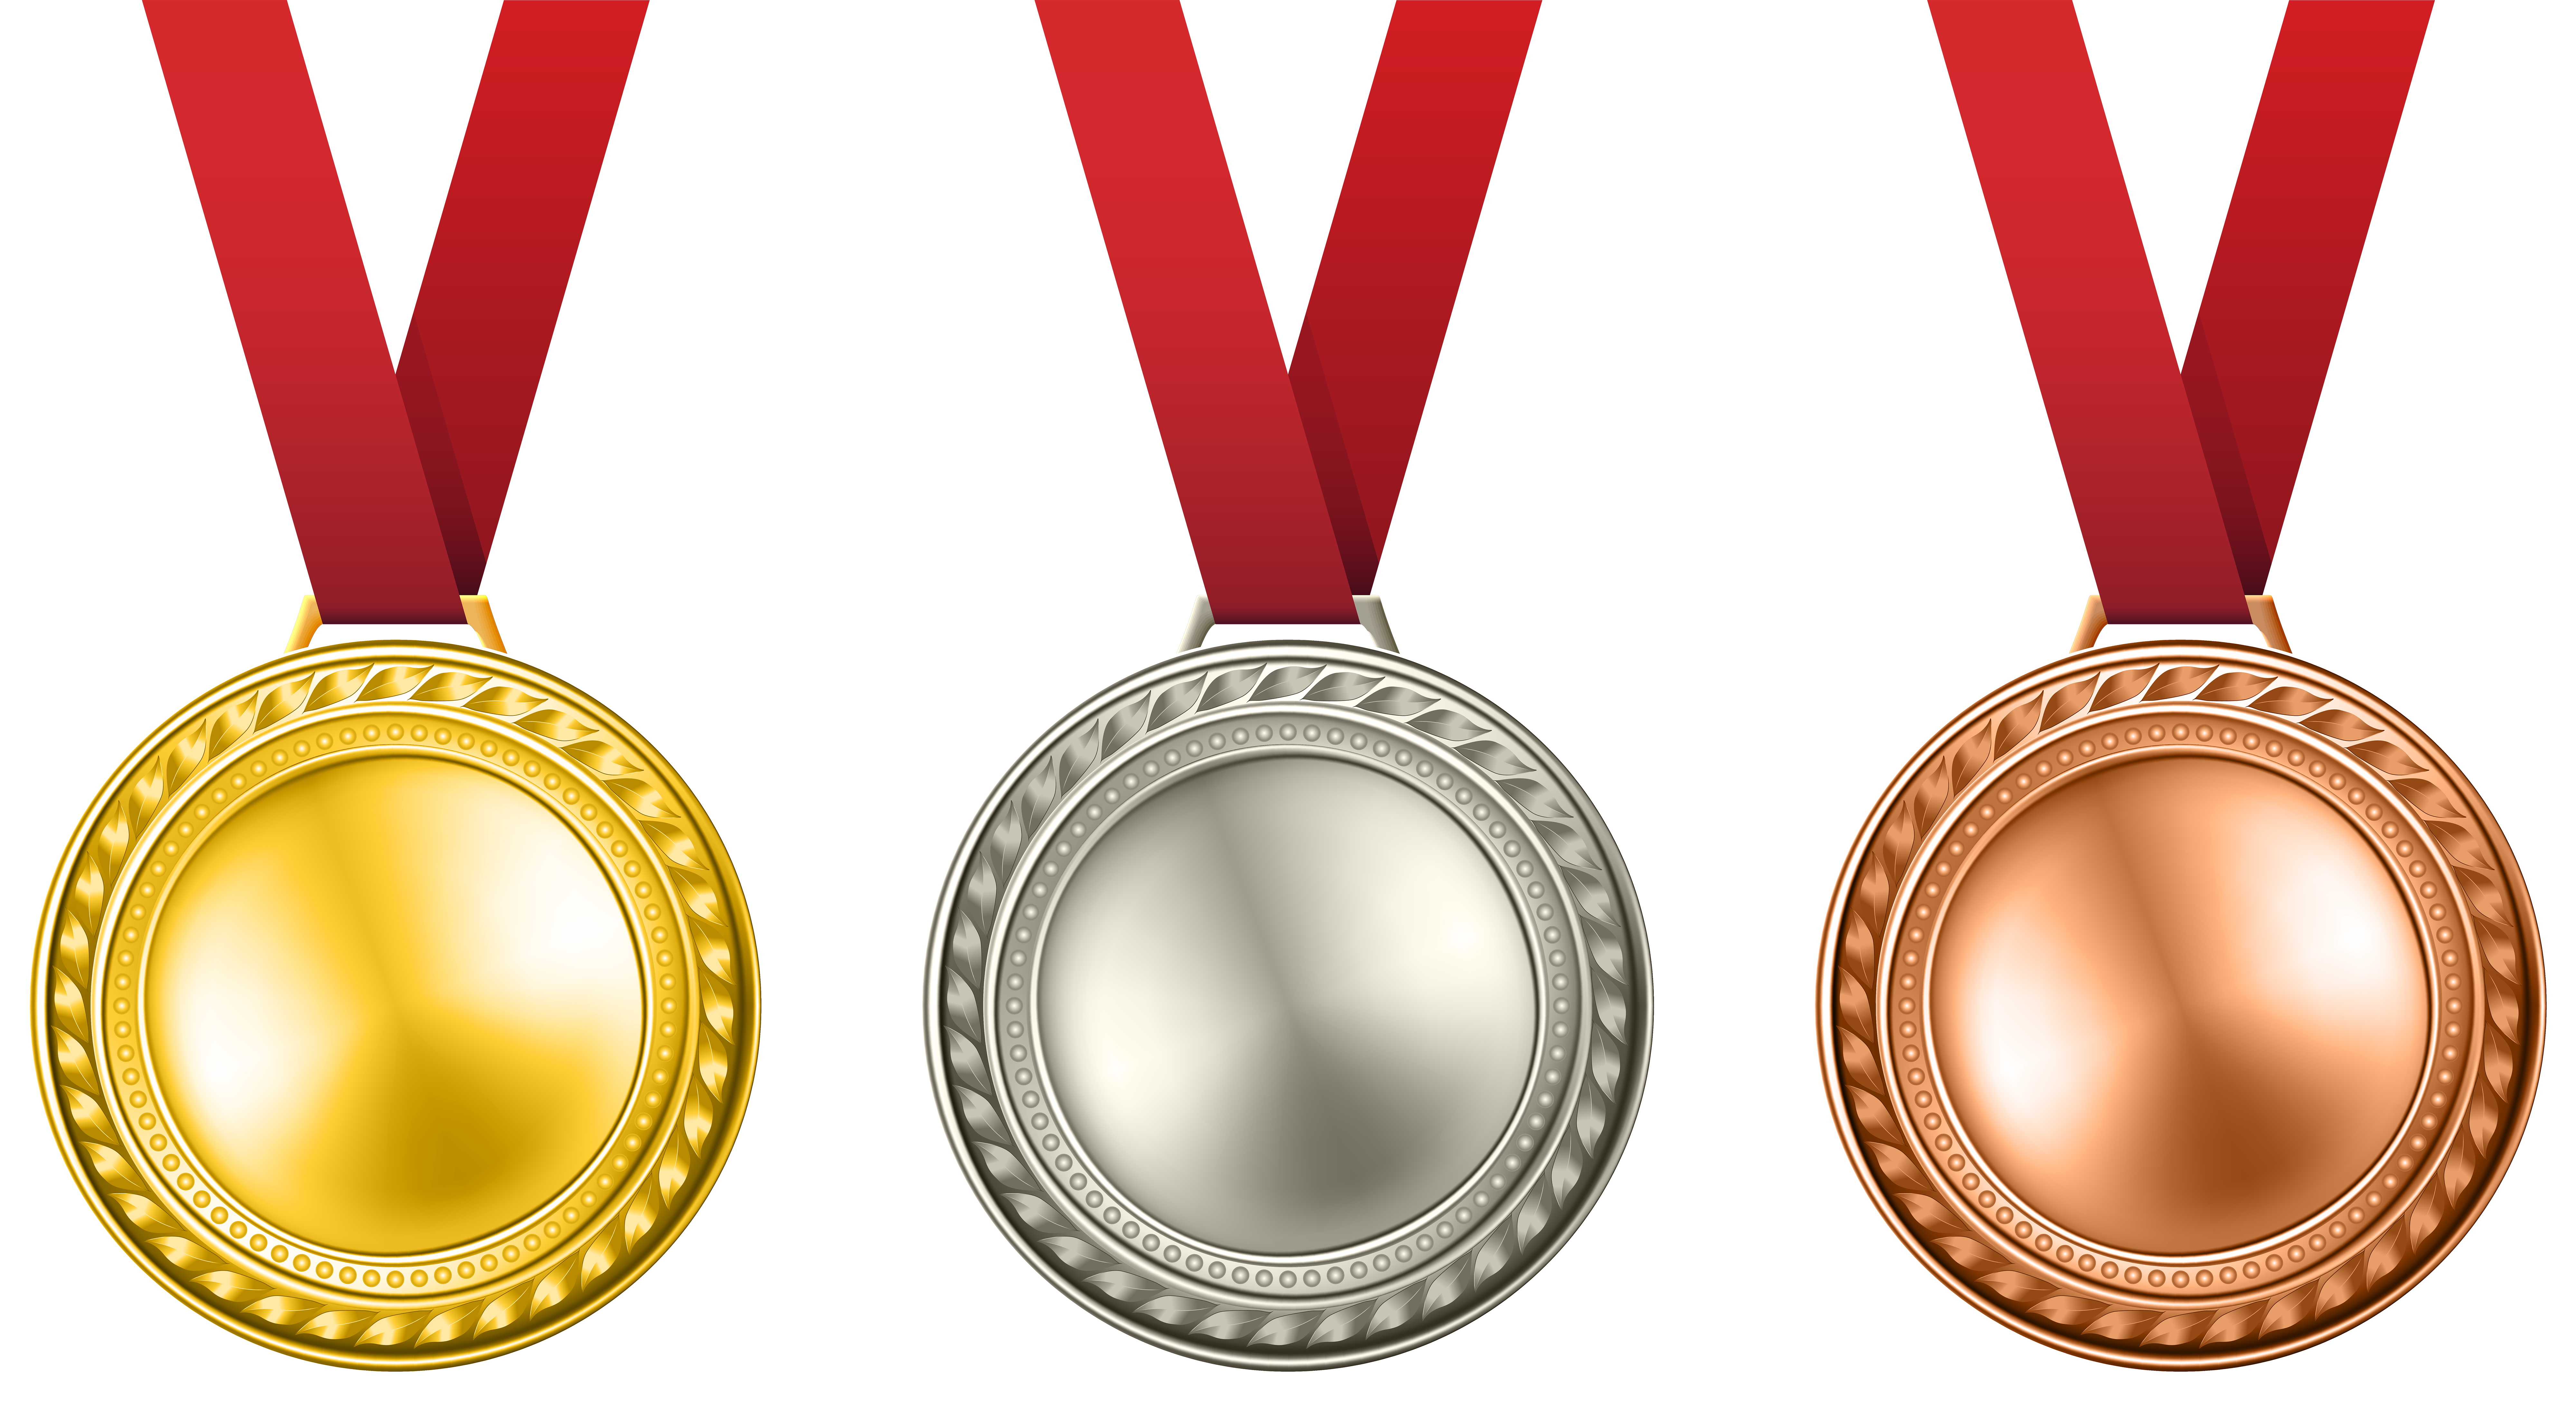 Medals and Ribbons Clip Art.